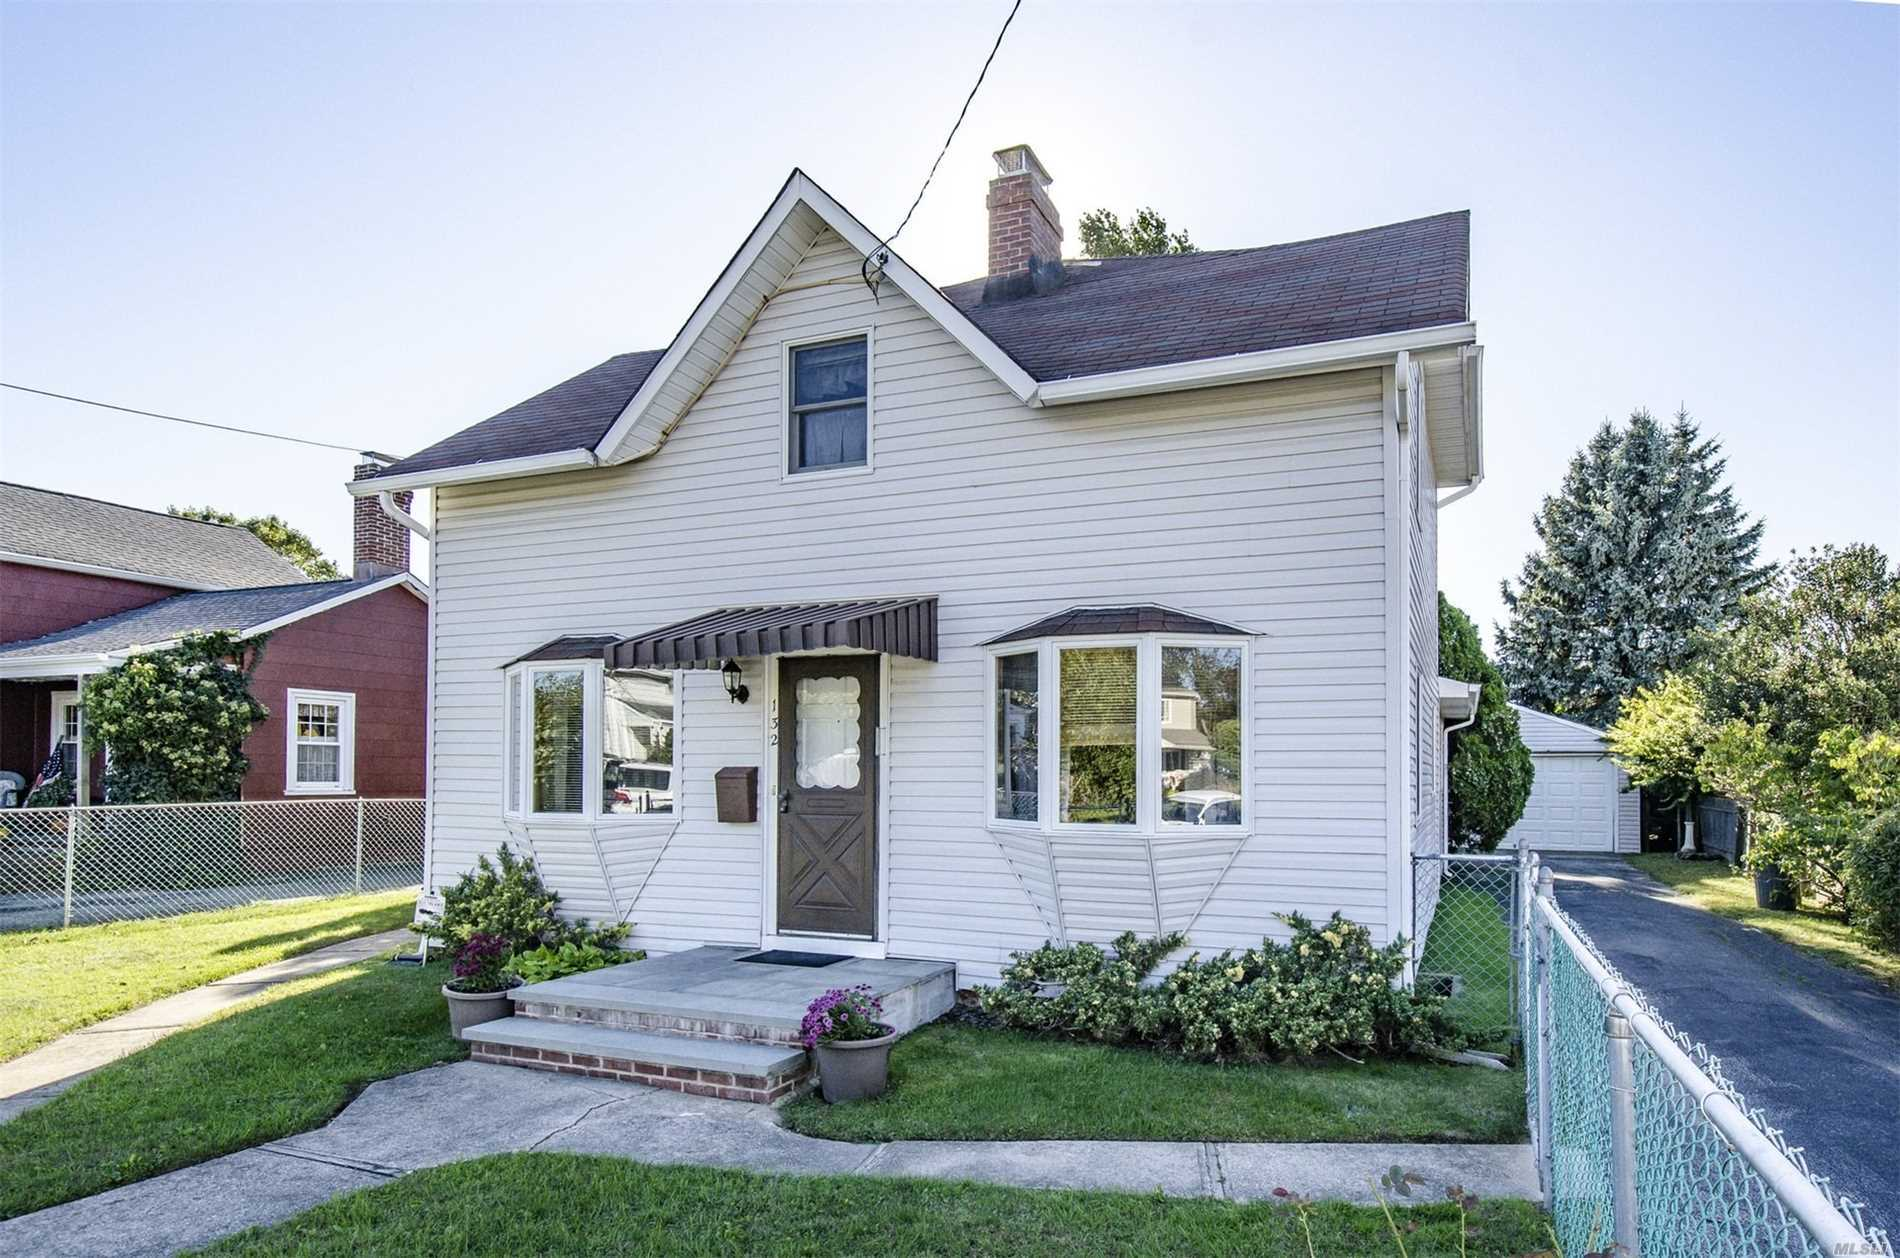 South Of Montauk. Charming 3 Bedroom Expanded Cape, Porcelain Tile, Hall And Kitchen. Greenhouse Window. Central Vac, Gas Stove, Gas Dryer, Security System, Fenced, Large, Deep Set Back Yard, Lots Of Extras